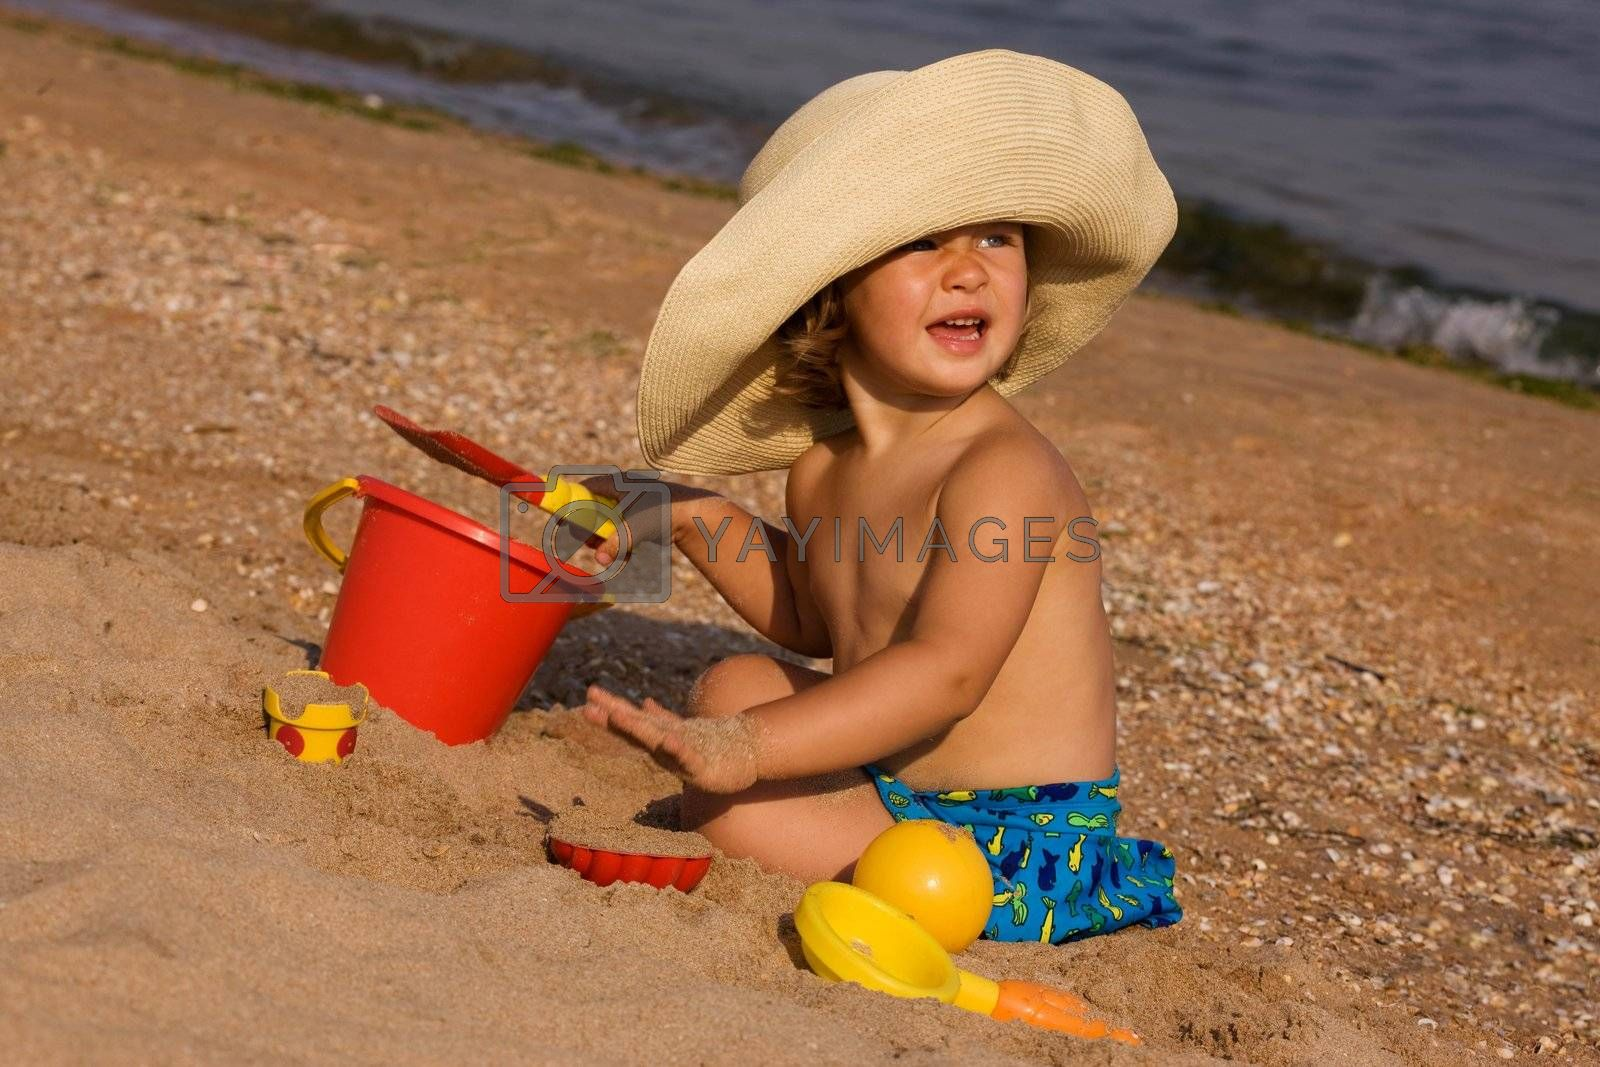 little girl in the bonnet plaing with sand, happy childhood